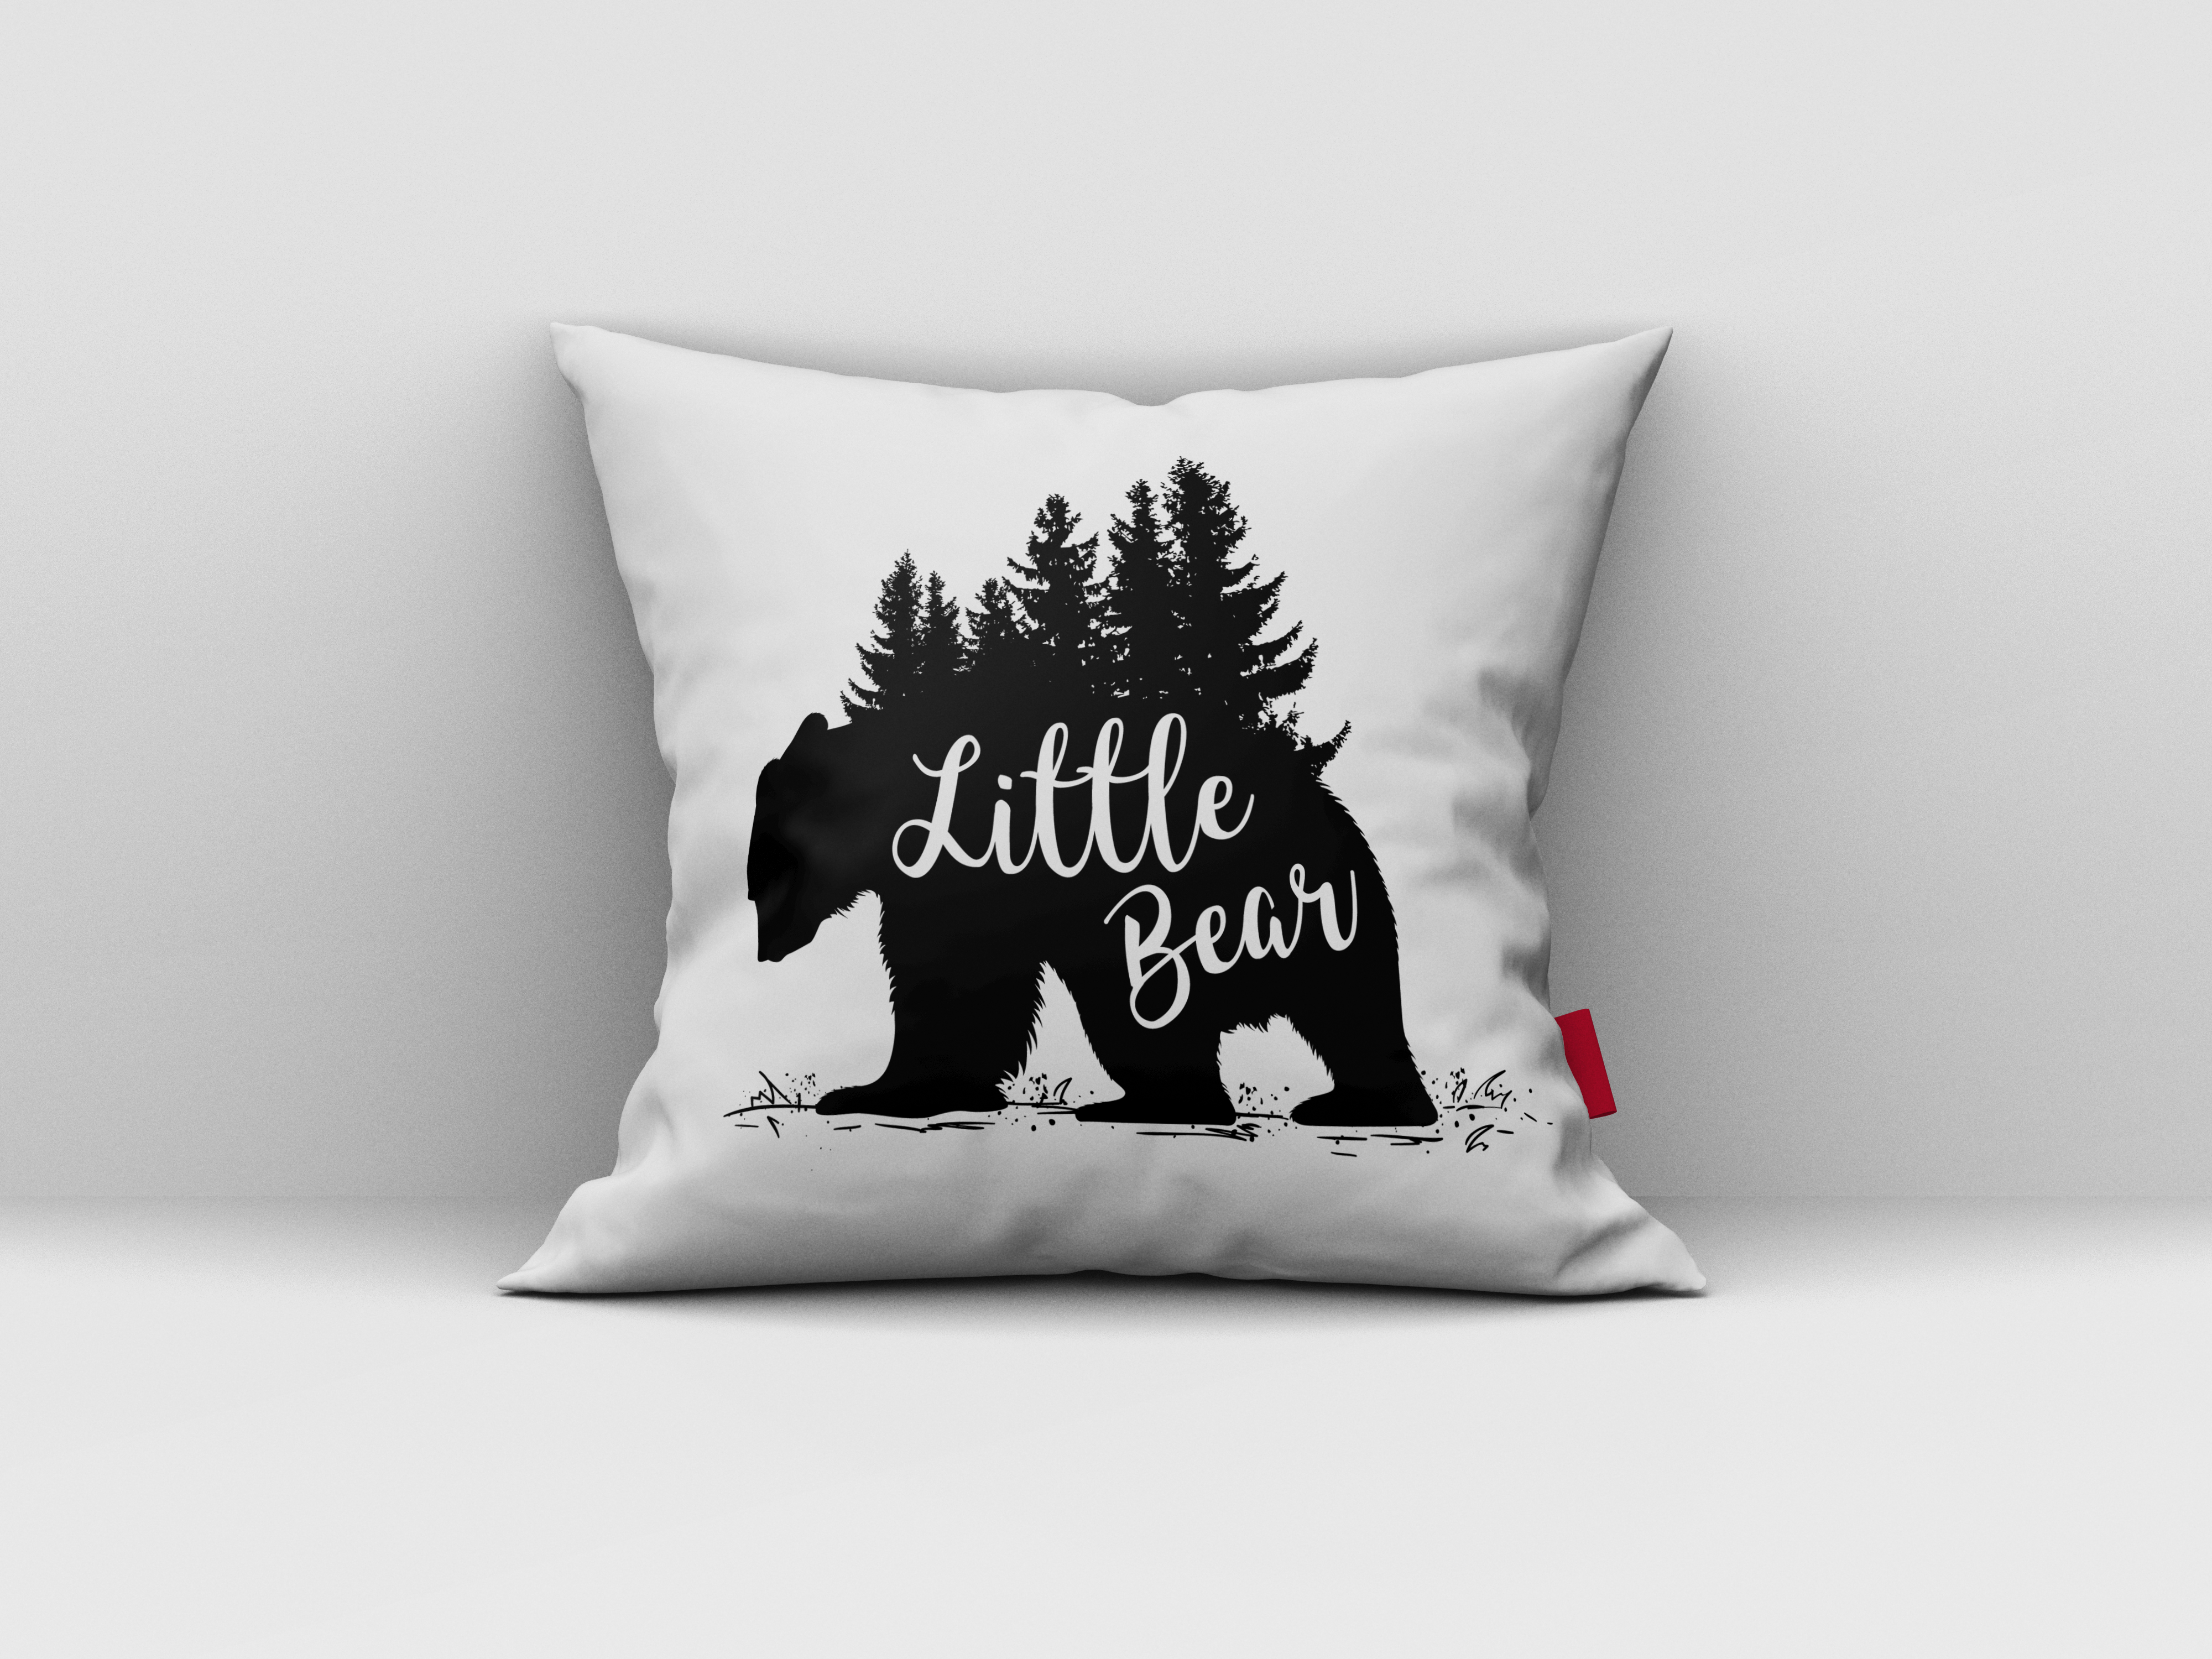 Download Free Little Bear Design Graphic By Aartstudioexpo Creative Fabrica for Cricut Explore, Silhouette and other cutting machines.